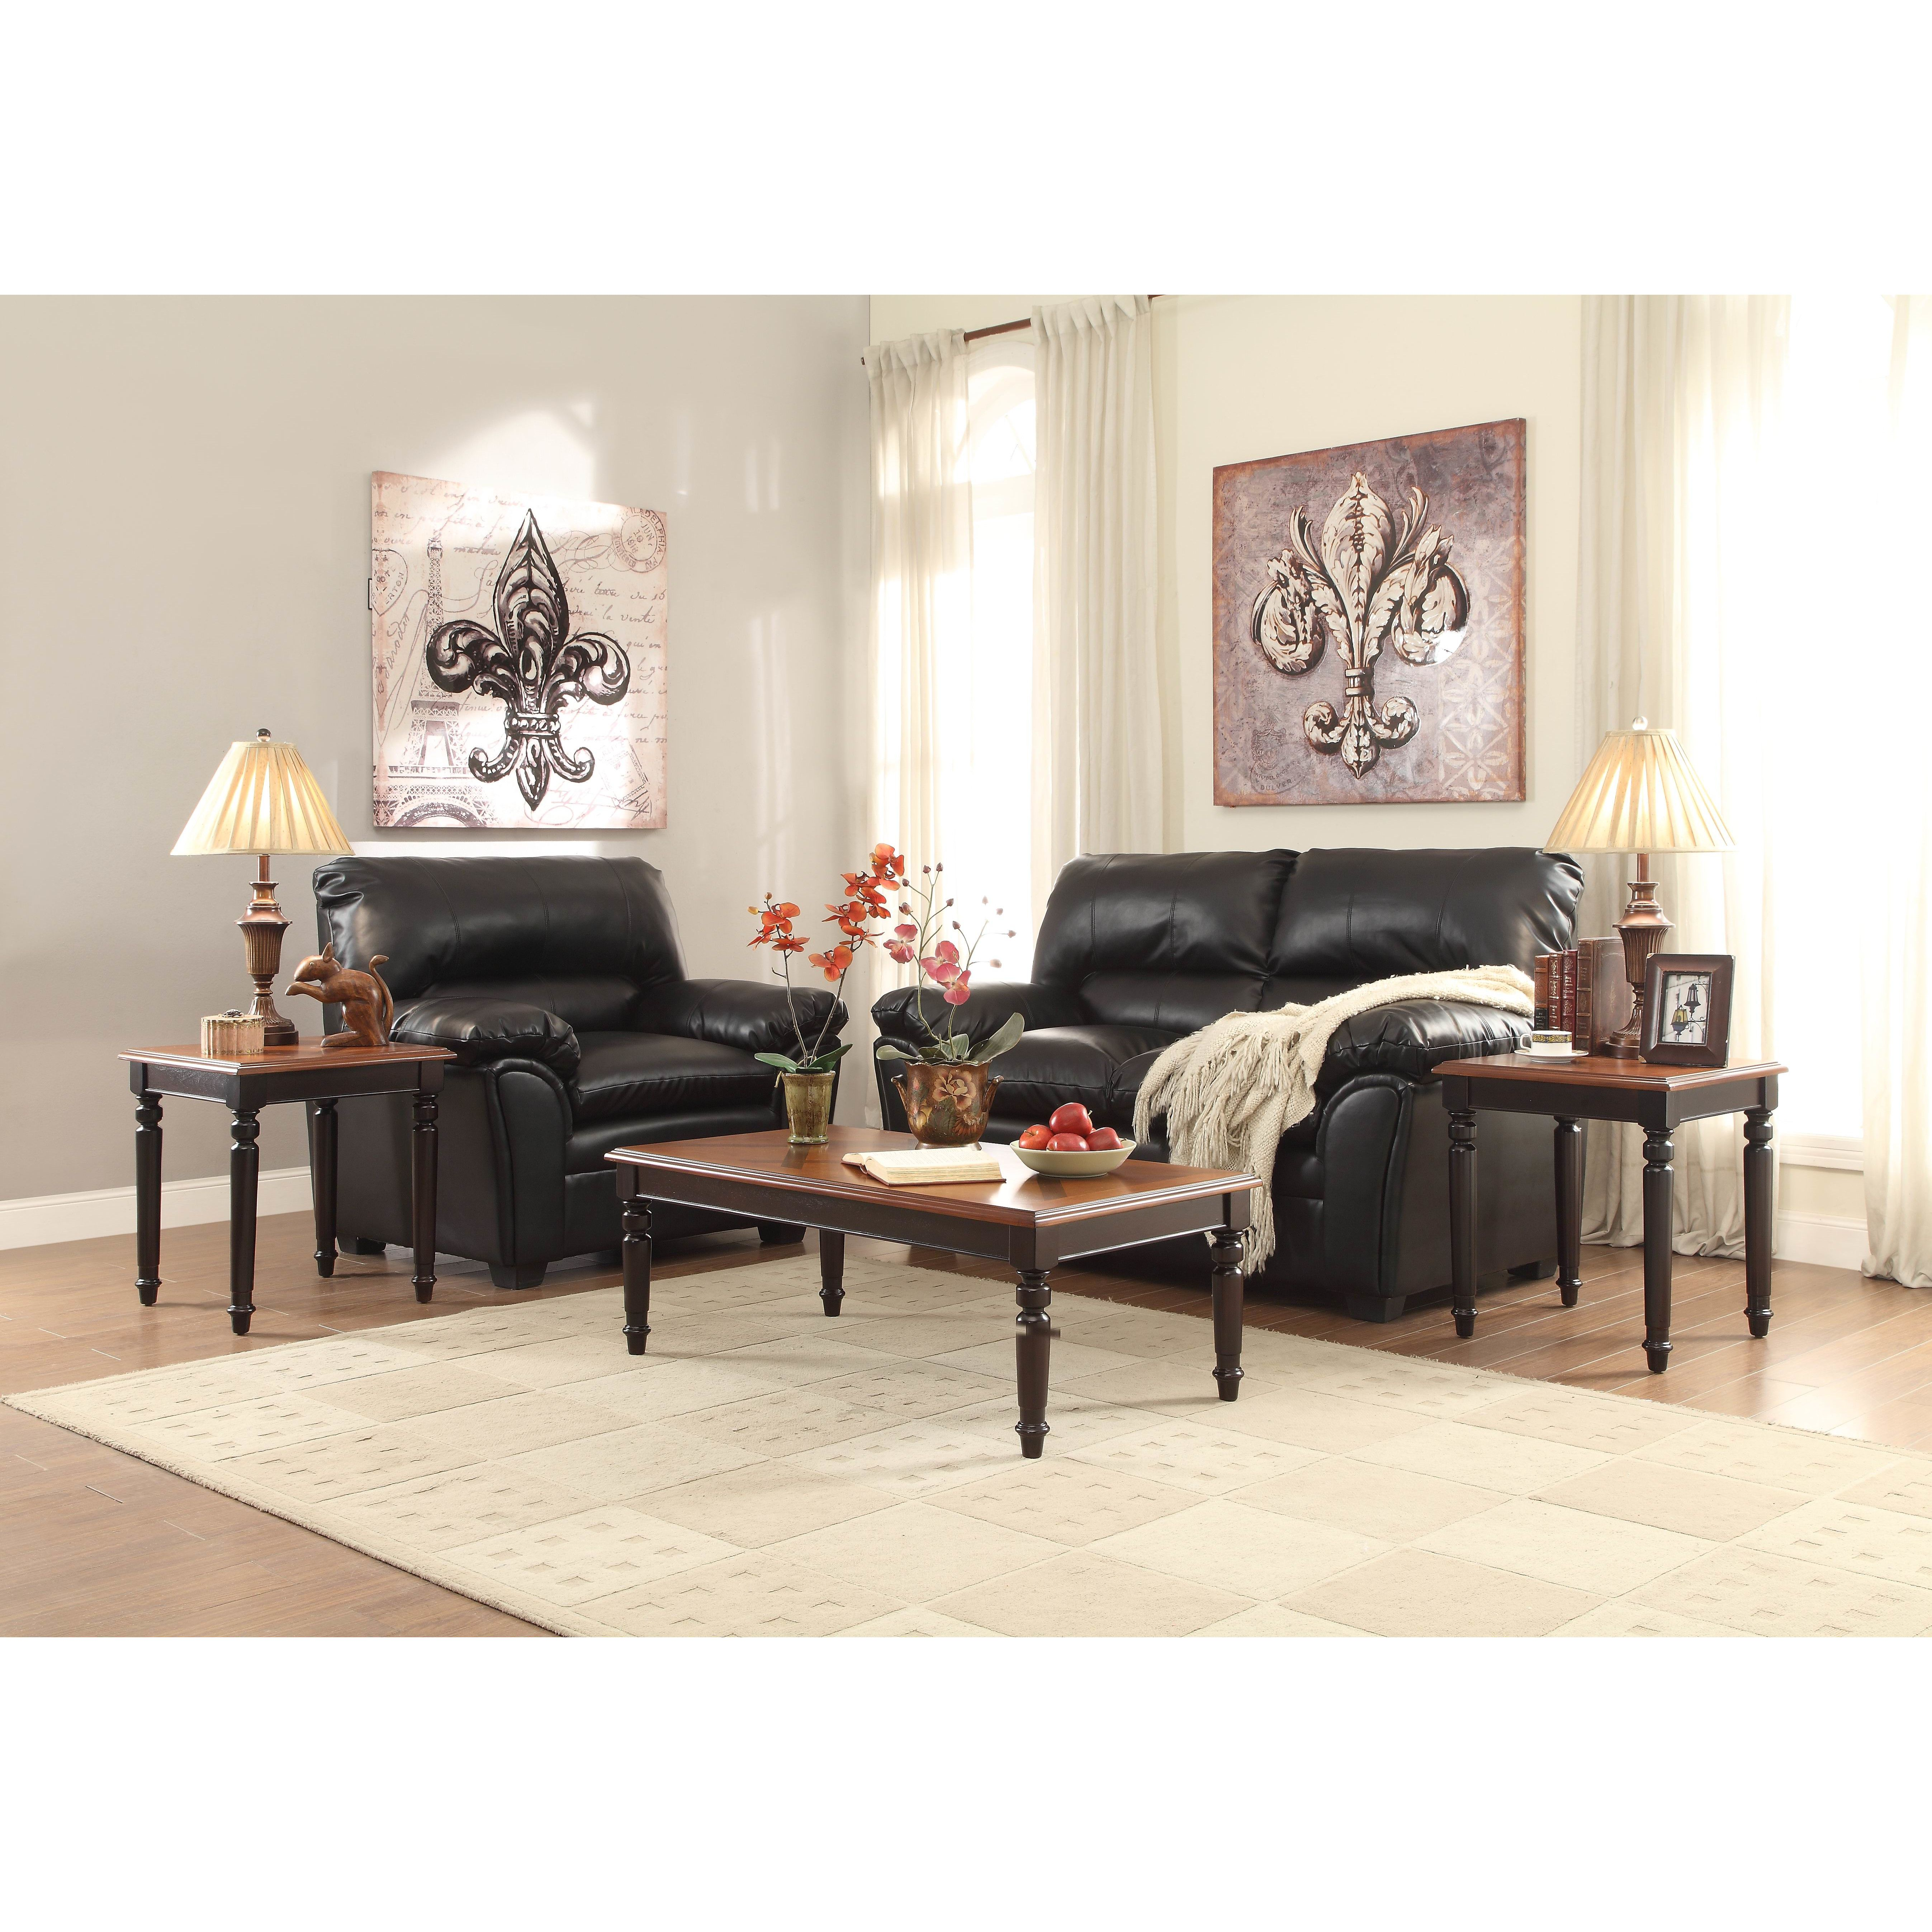 Woodhaven Hill Pitman 3 Piece Occasional Coffee Table Set La Mia. Wooden Furniture Living Room. Icon Of How To Make My Living Room Tidy and Orderly Modern. Delectable Living Room Furniture with Wood Trim Design Ideas With